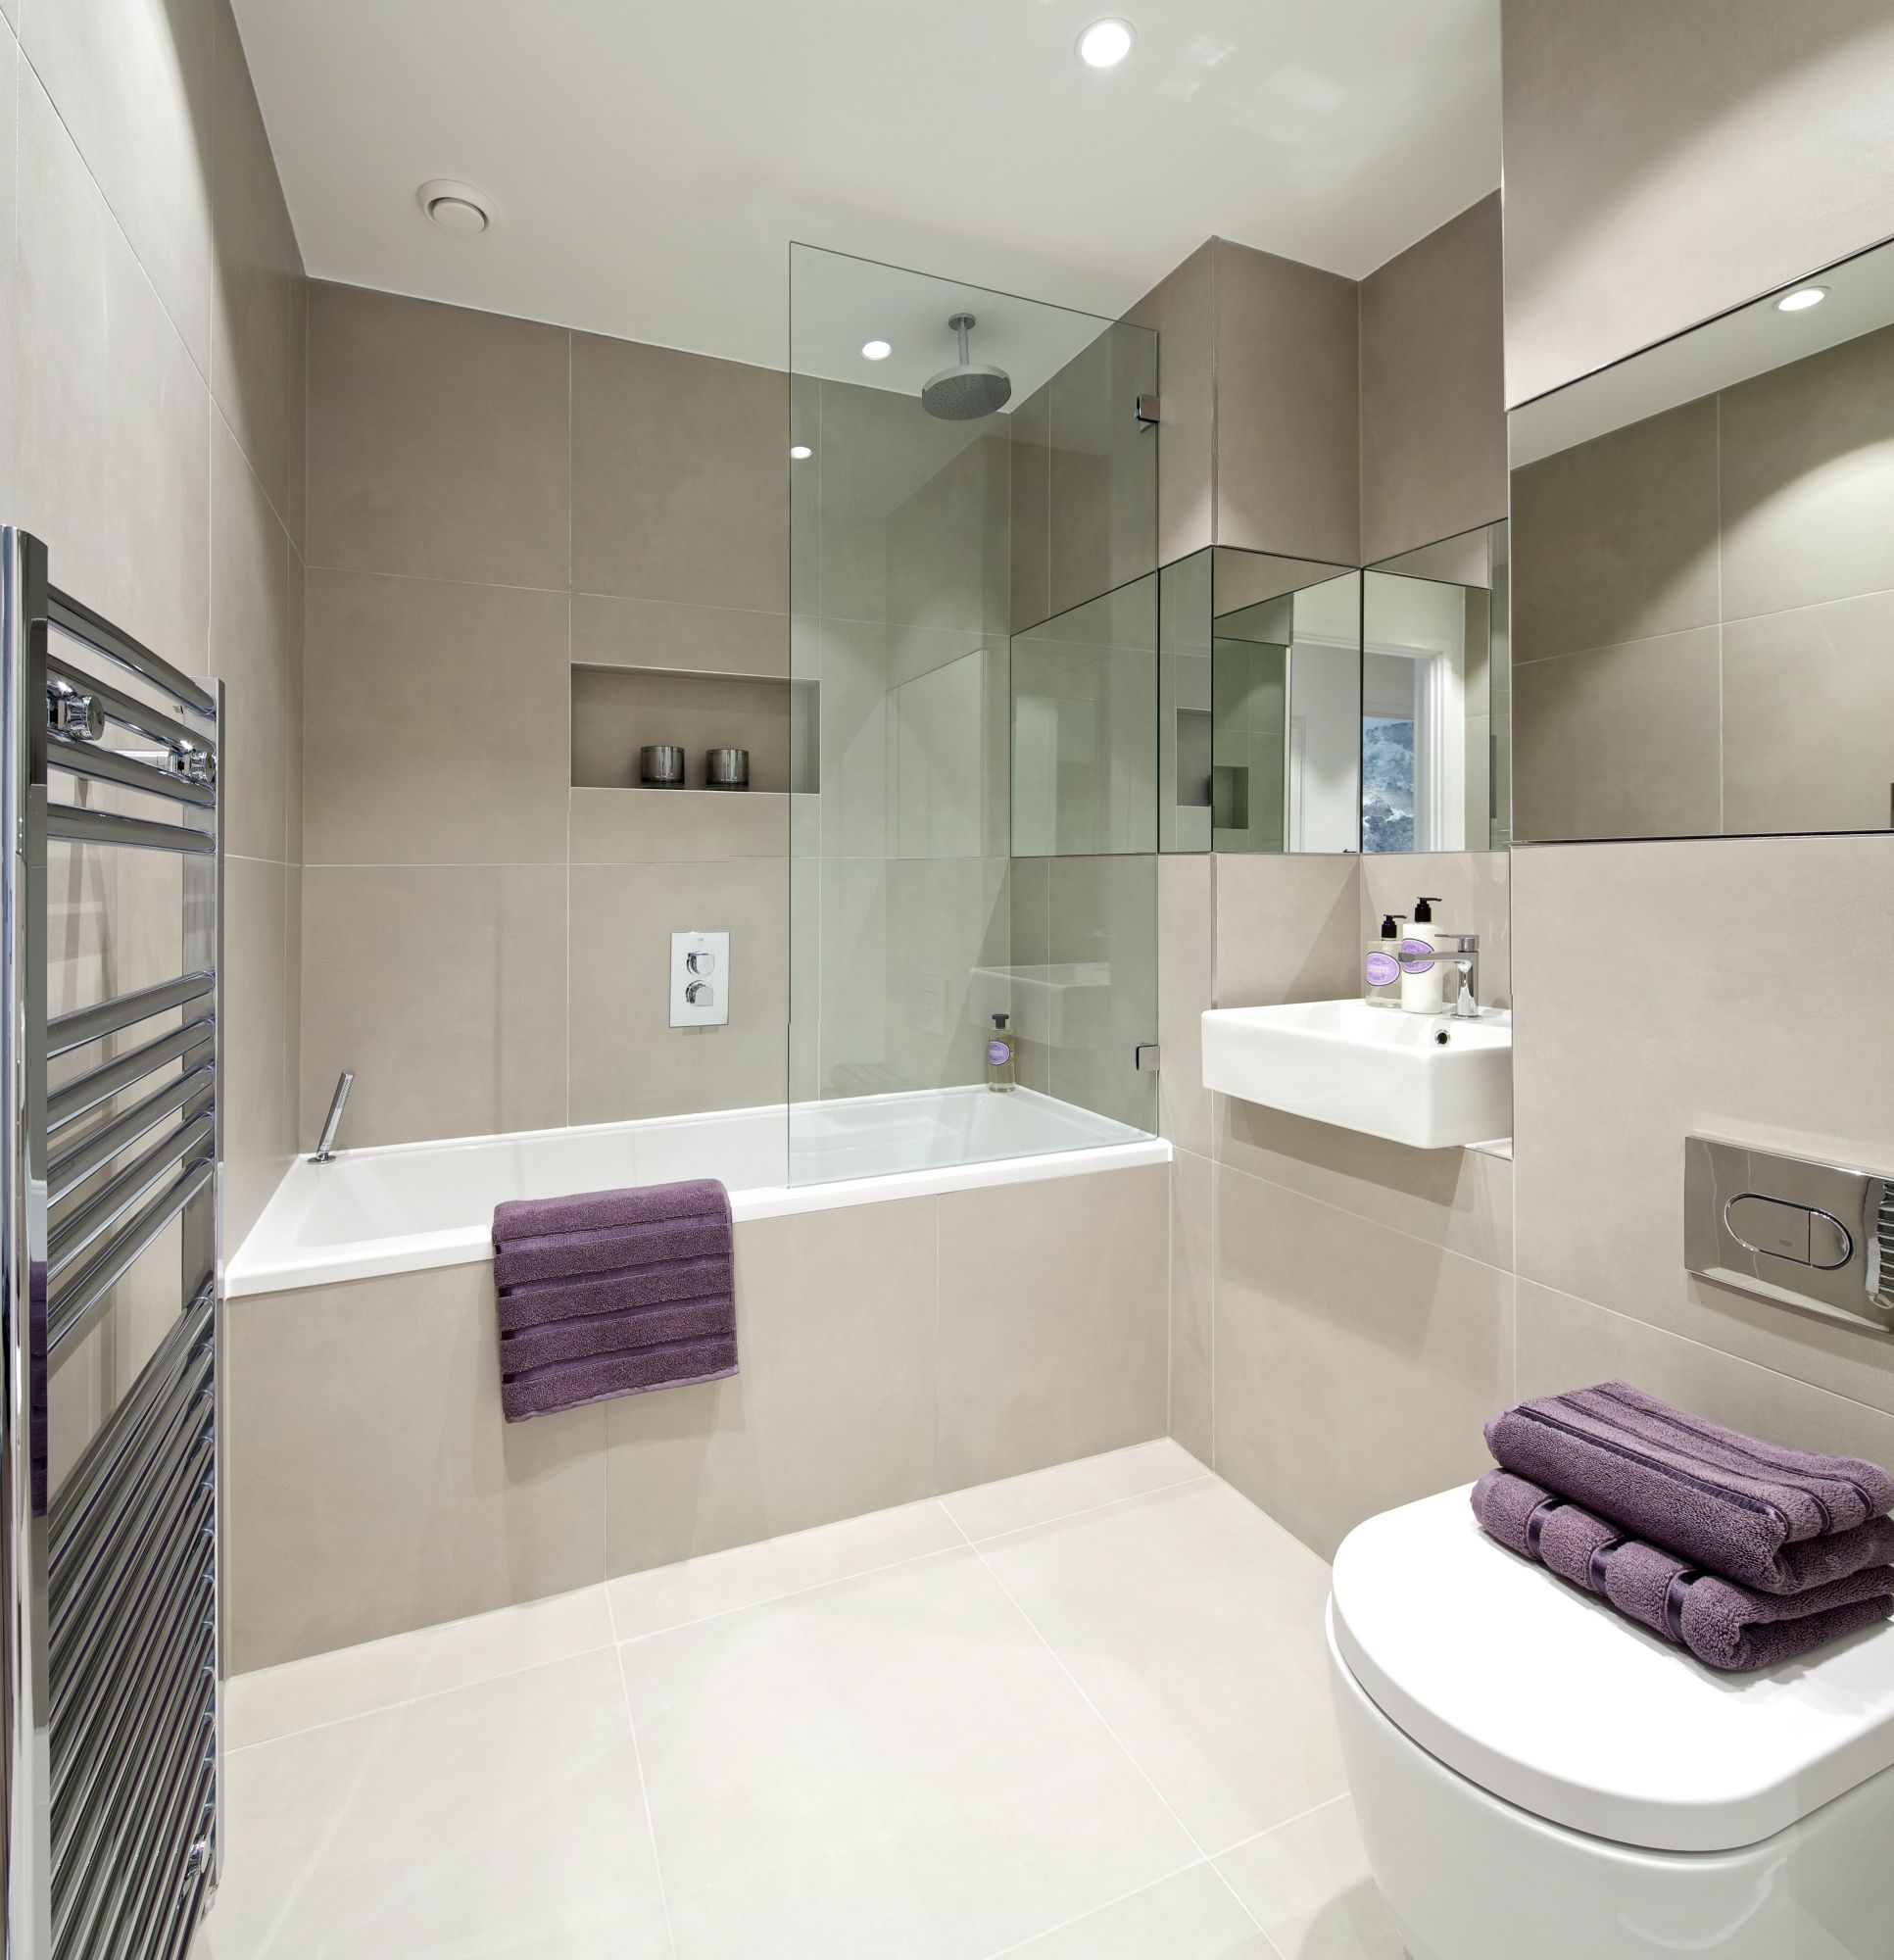 Stunning Home Interiors Bathroom Another Stunning Show Home Design By Sun